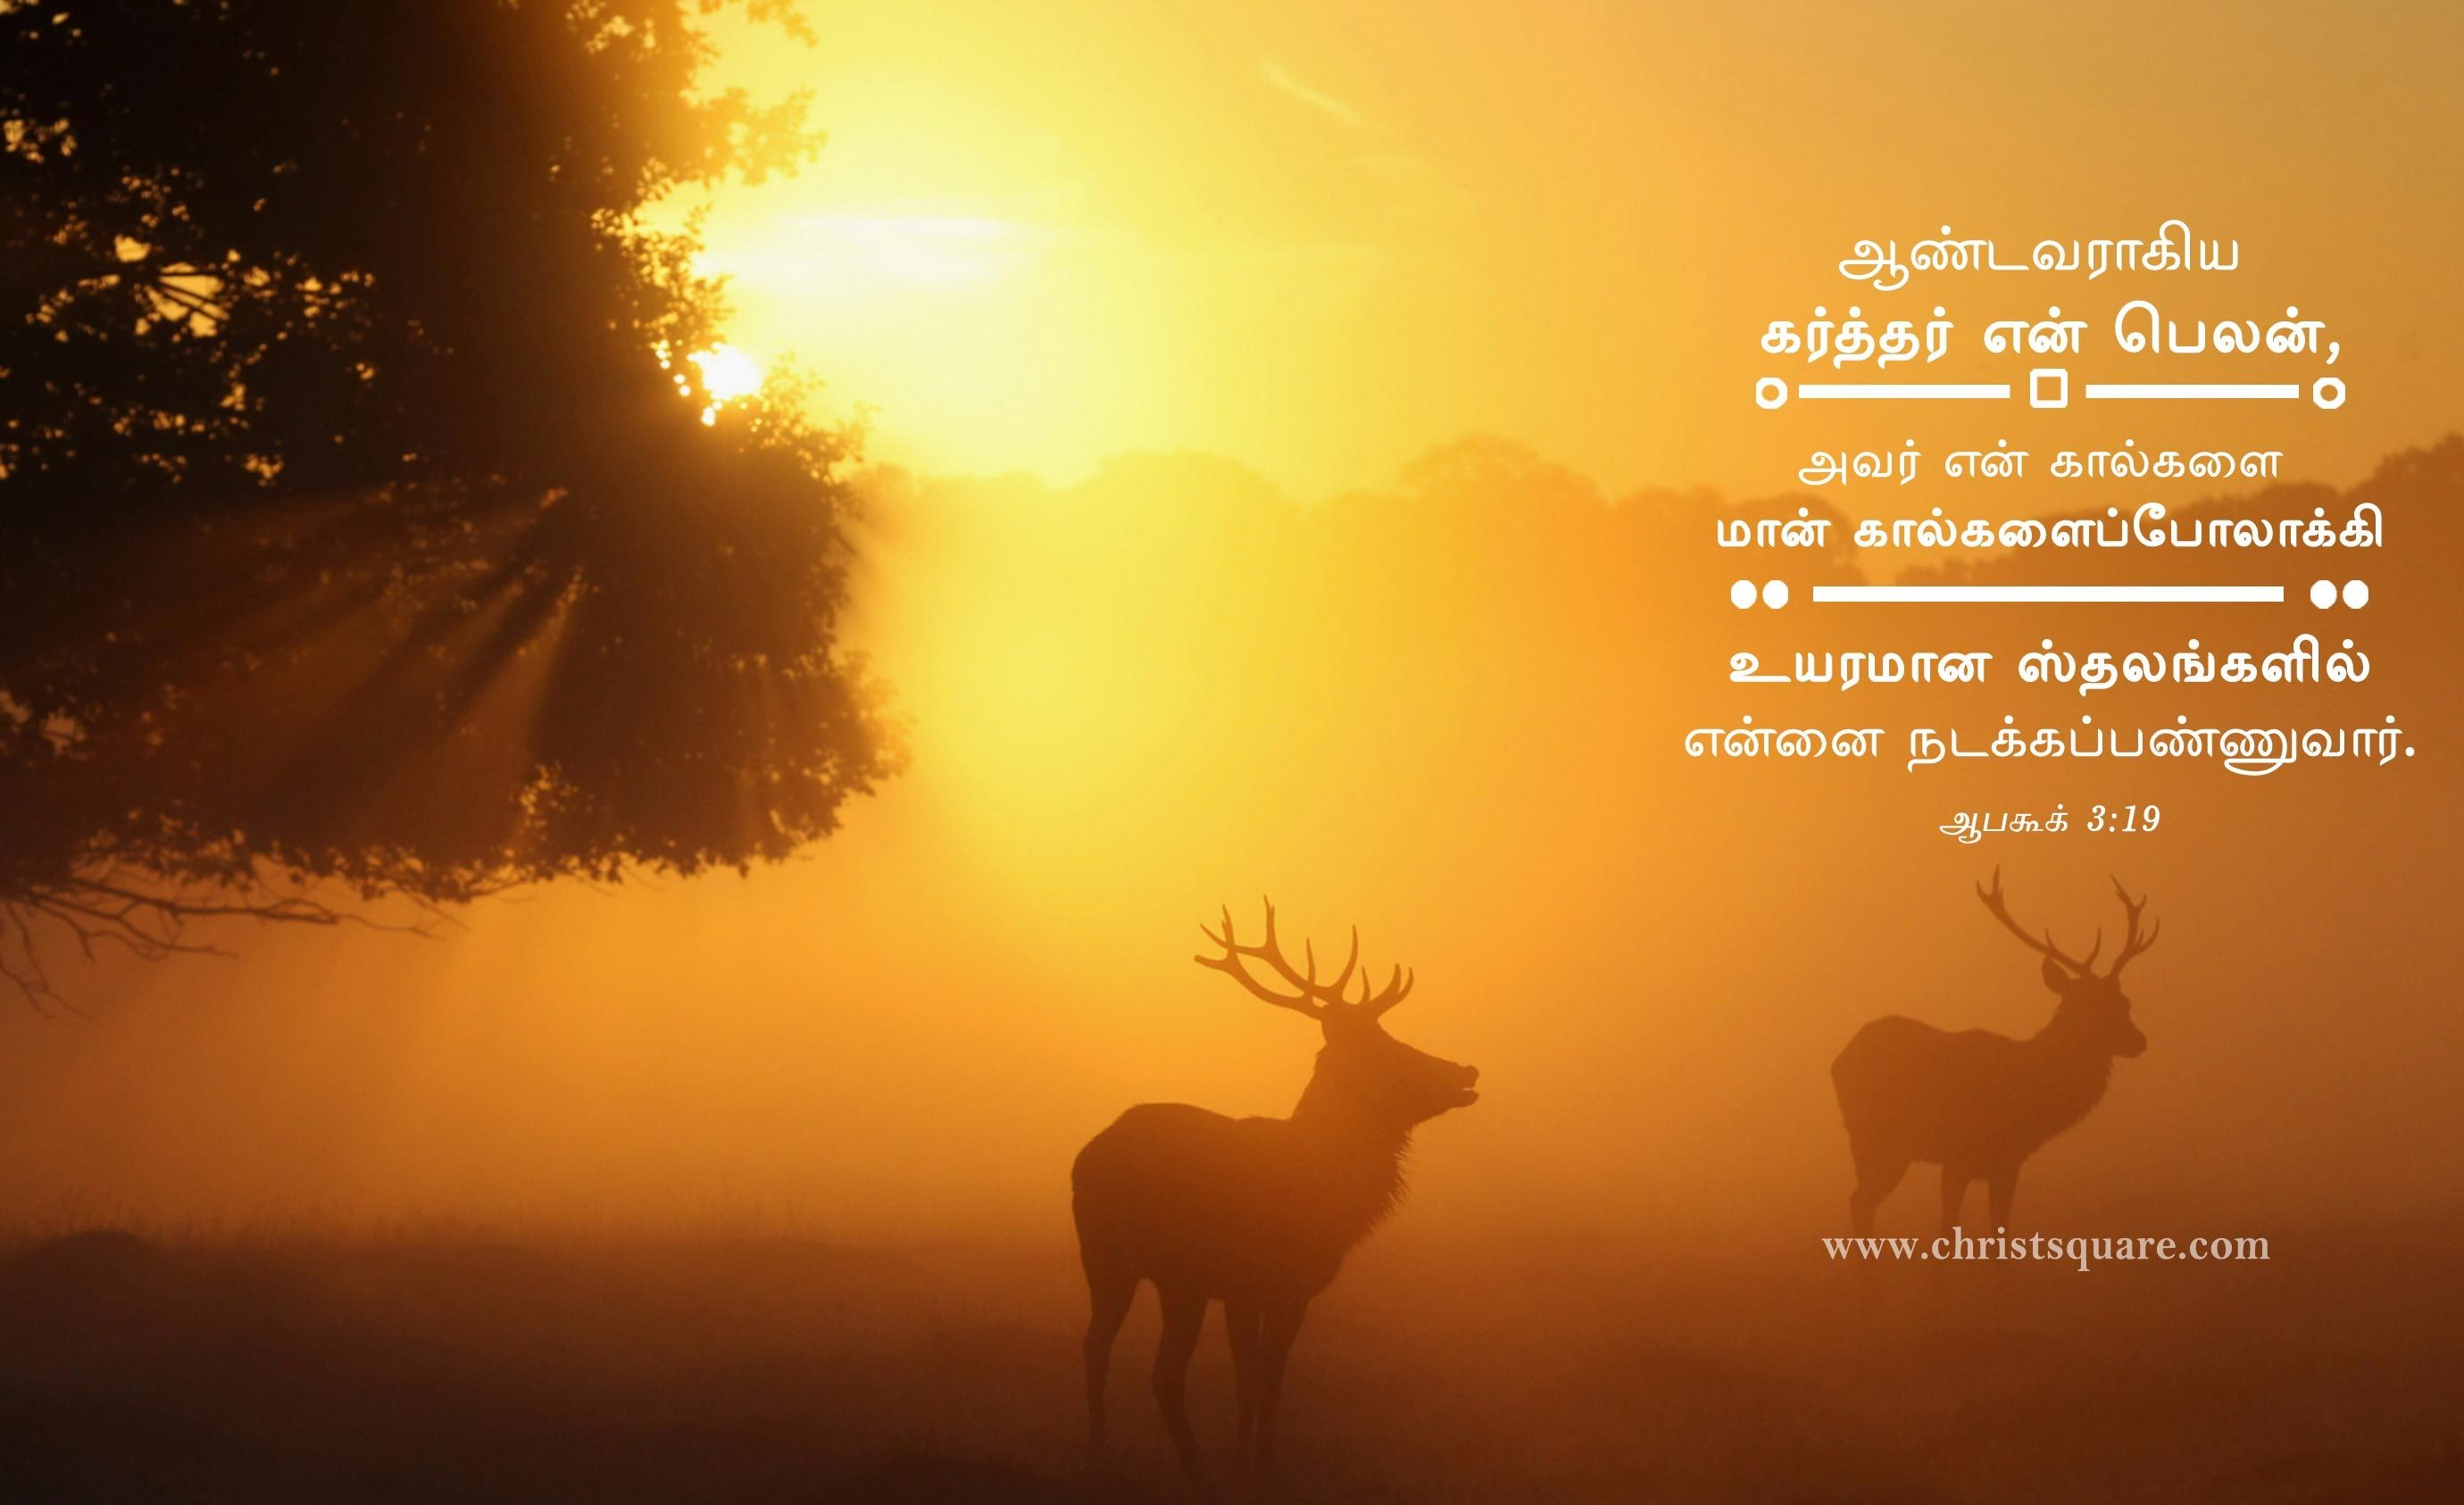 Res: 2760x1686, Tamil christian, tamil christian wallpaper, tamil christian wallpaper HD,  tamil christian words image